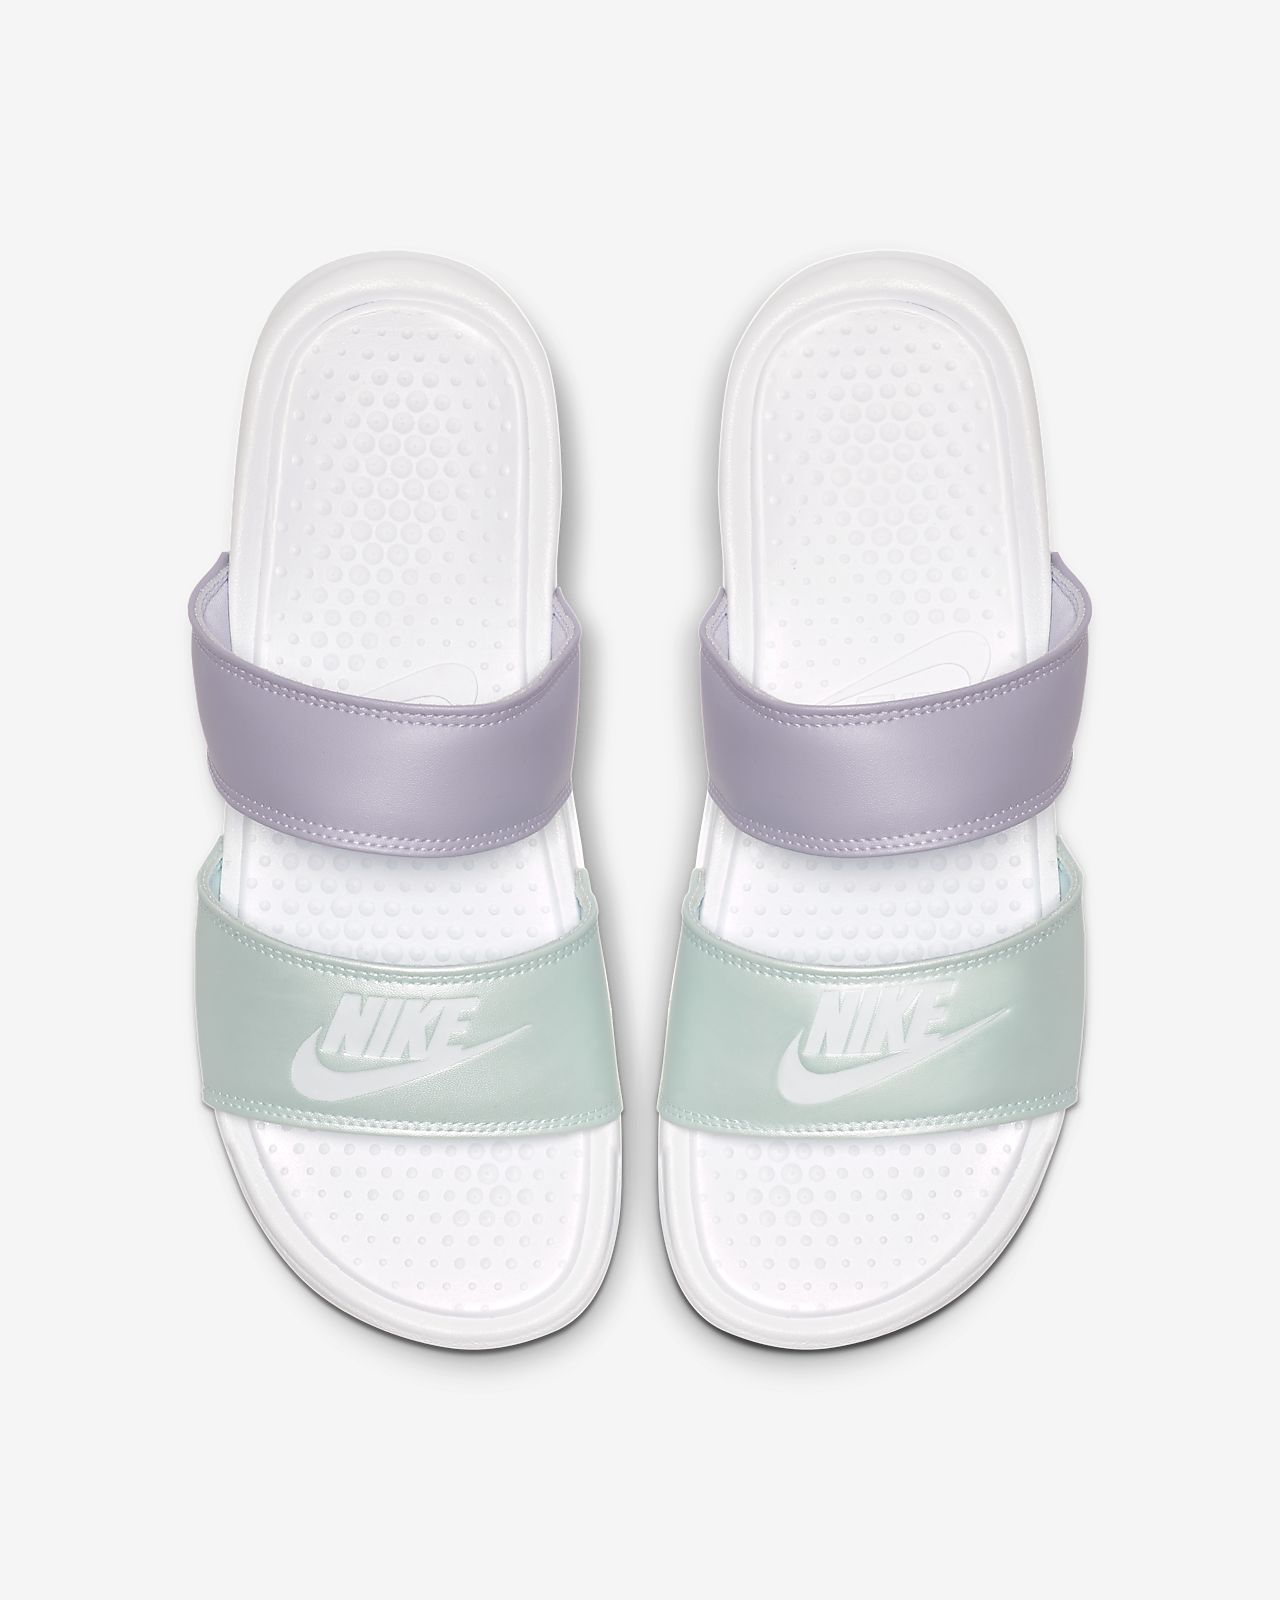 check out bea40 212e7 ... Nike Benassi Duo Ultra Women s Slide